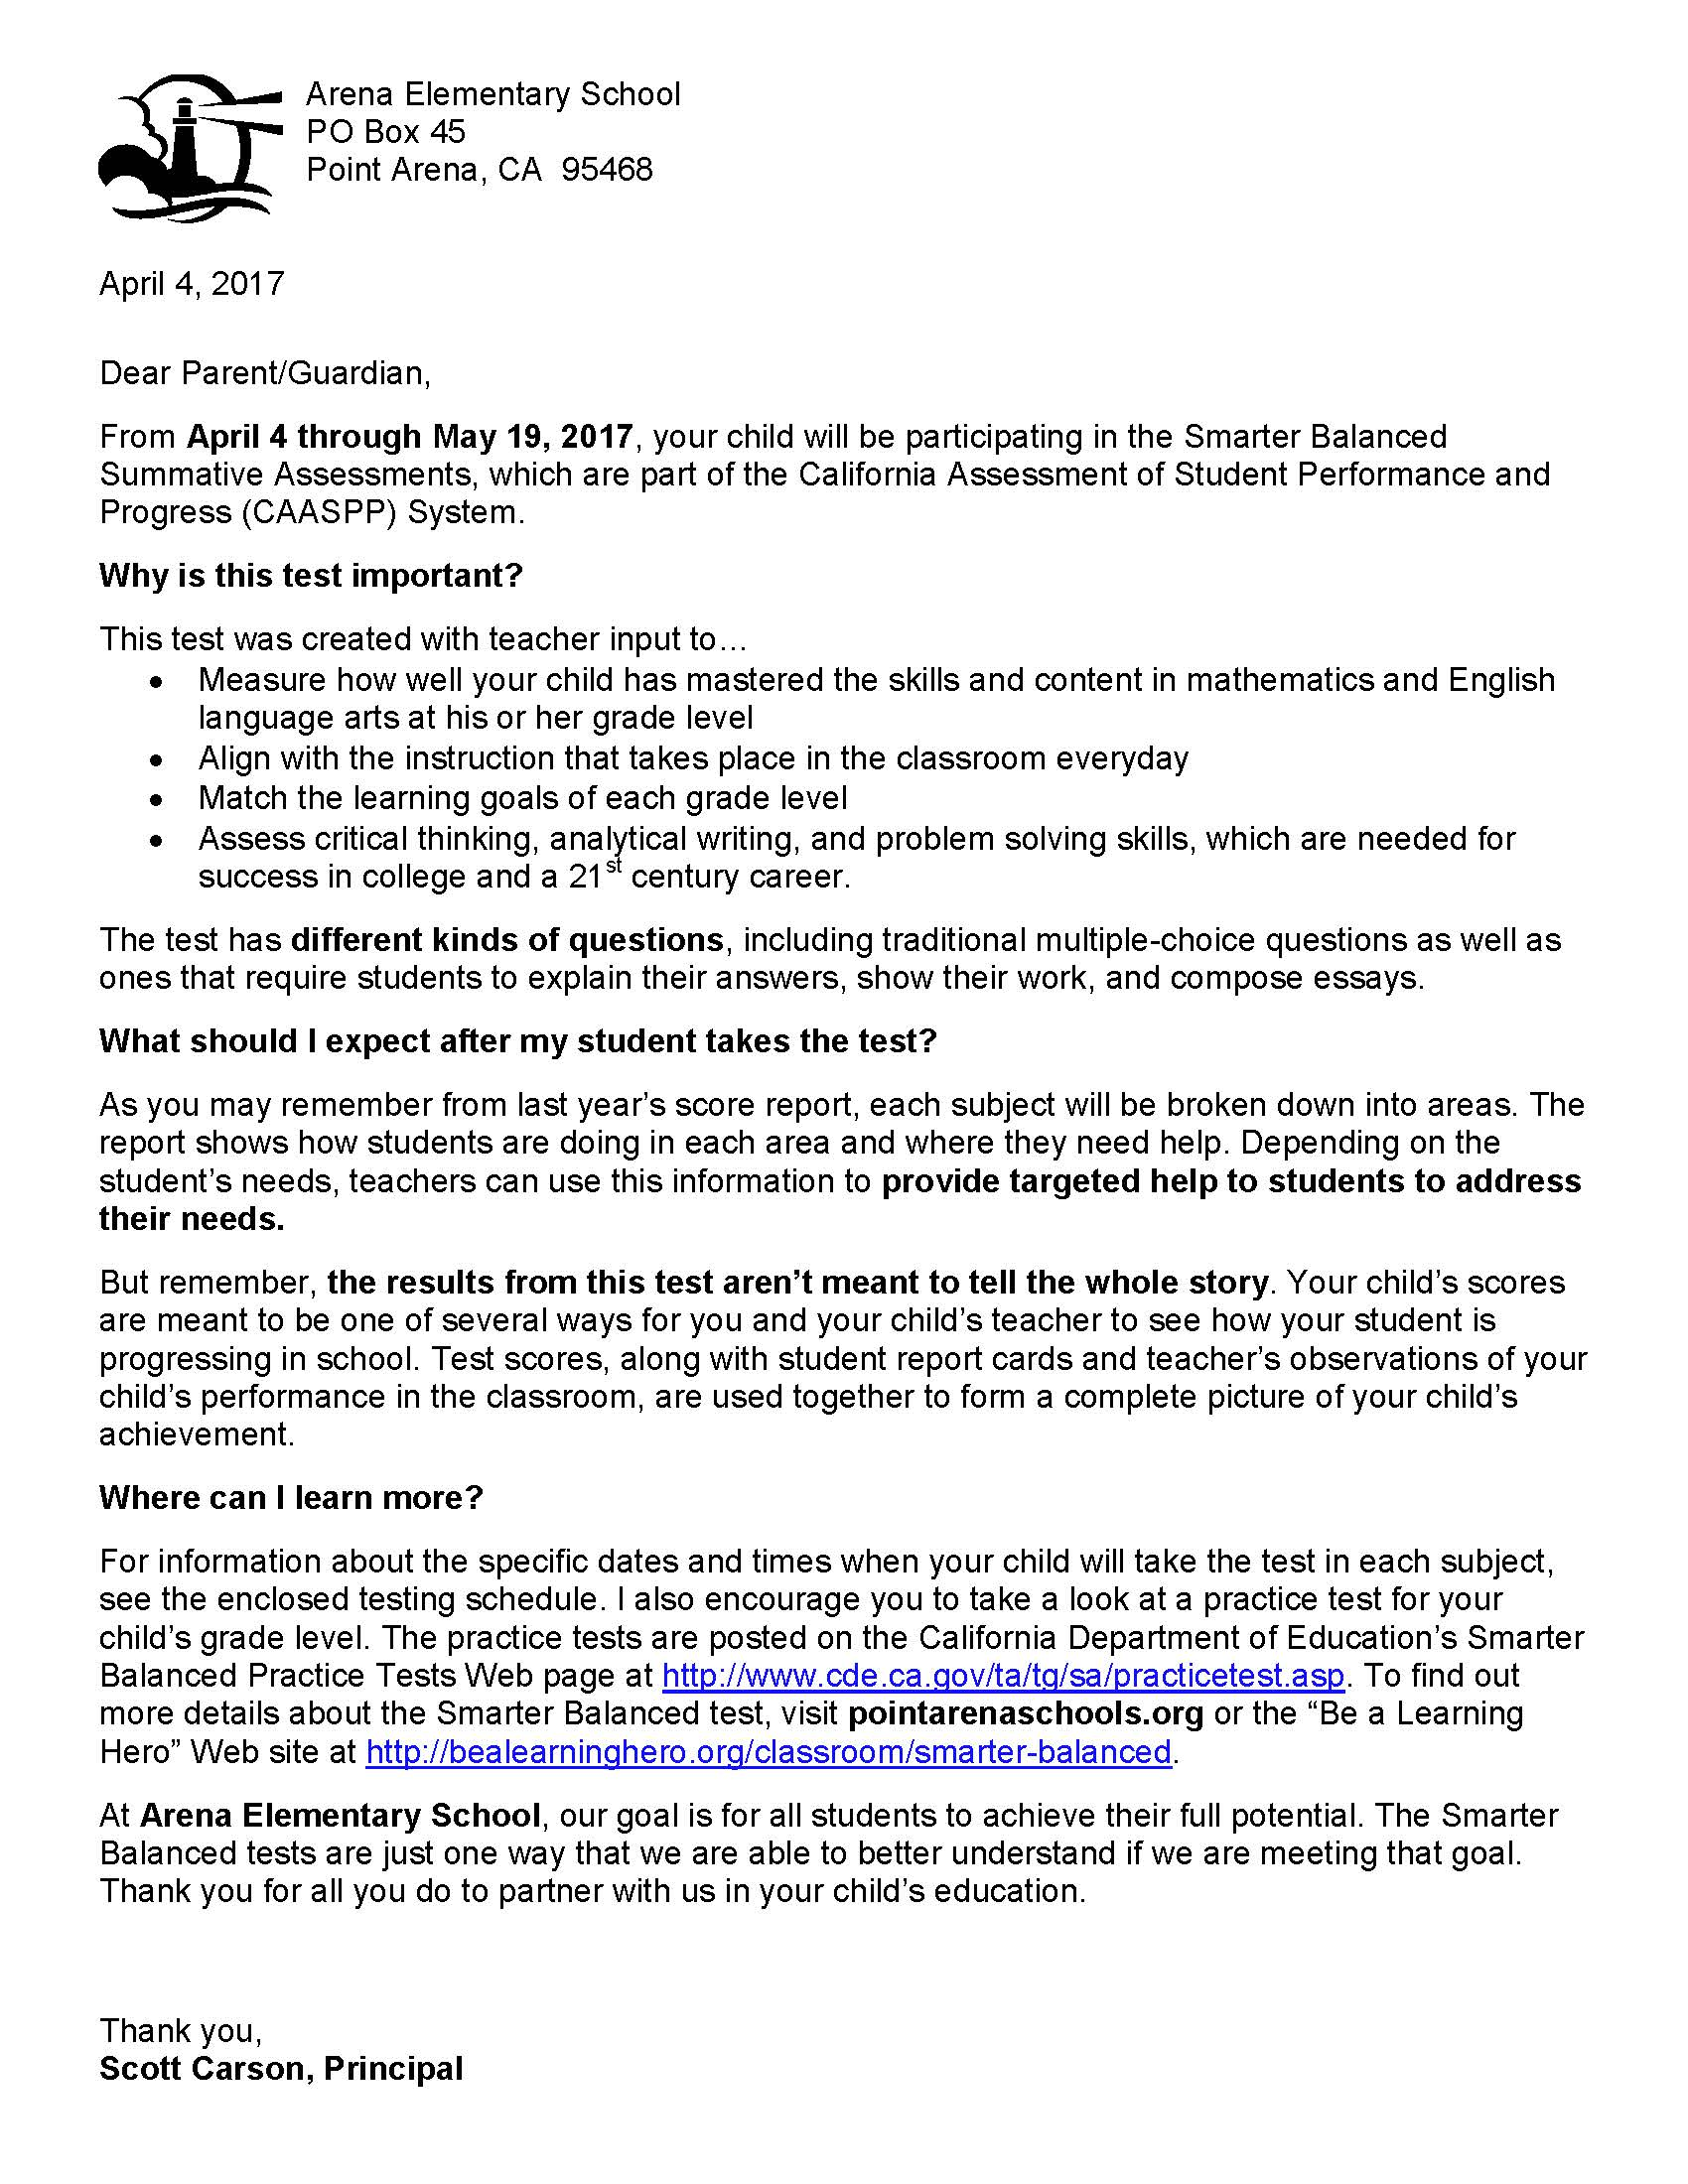 Parent CAASPP Letter